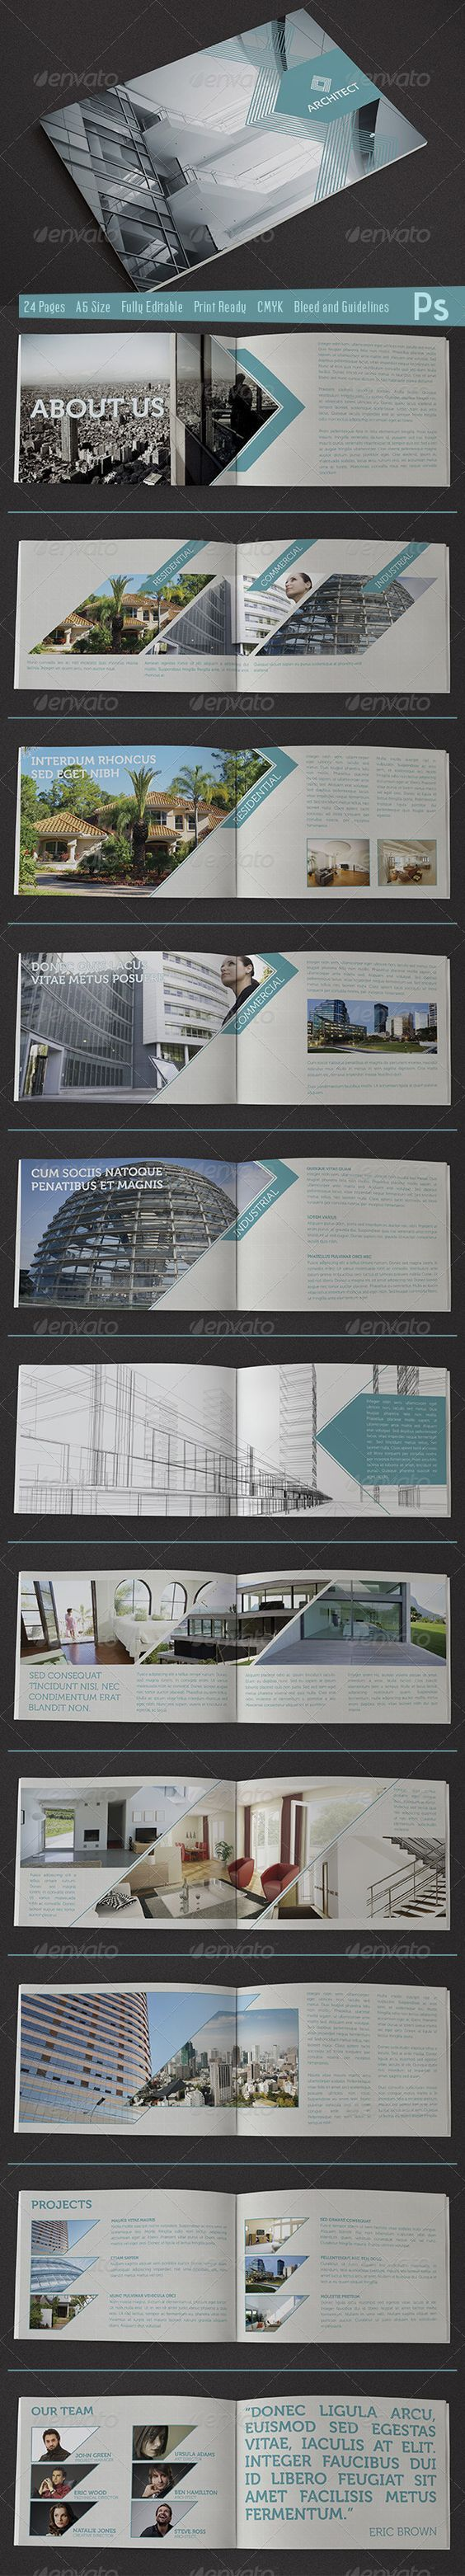 architecture brochure design pdf - top 25 best architecture portfolio pdf ideas on pinterest